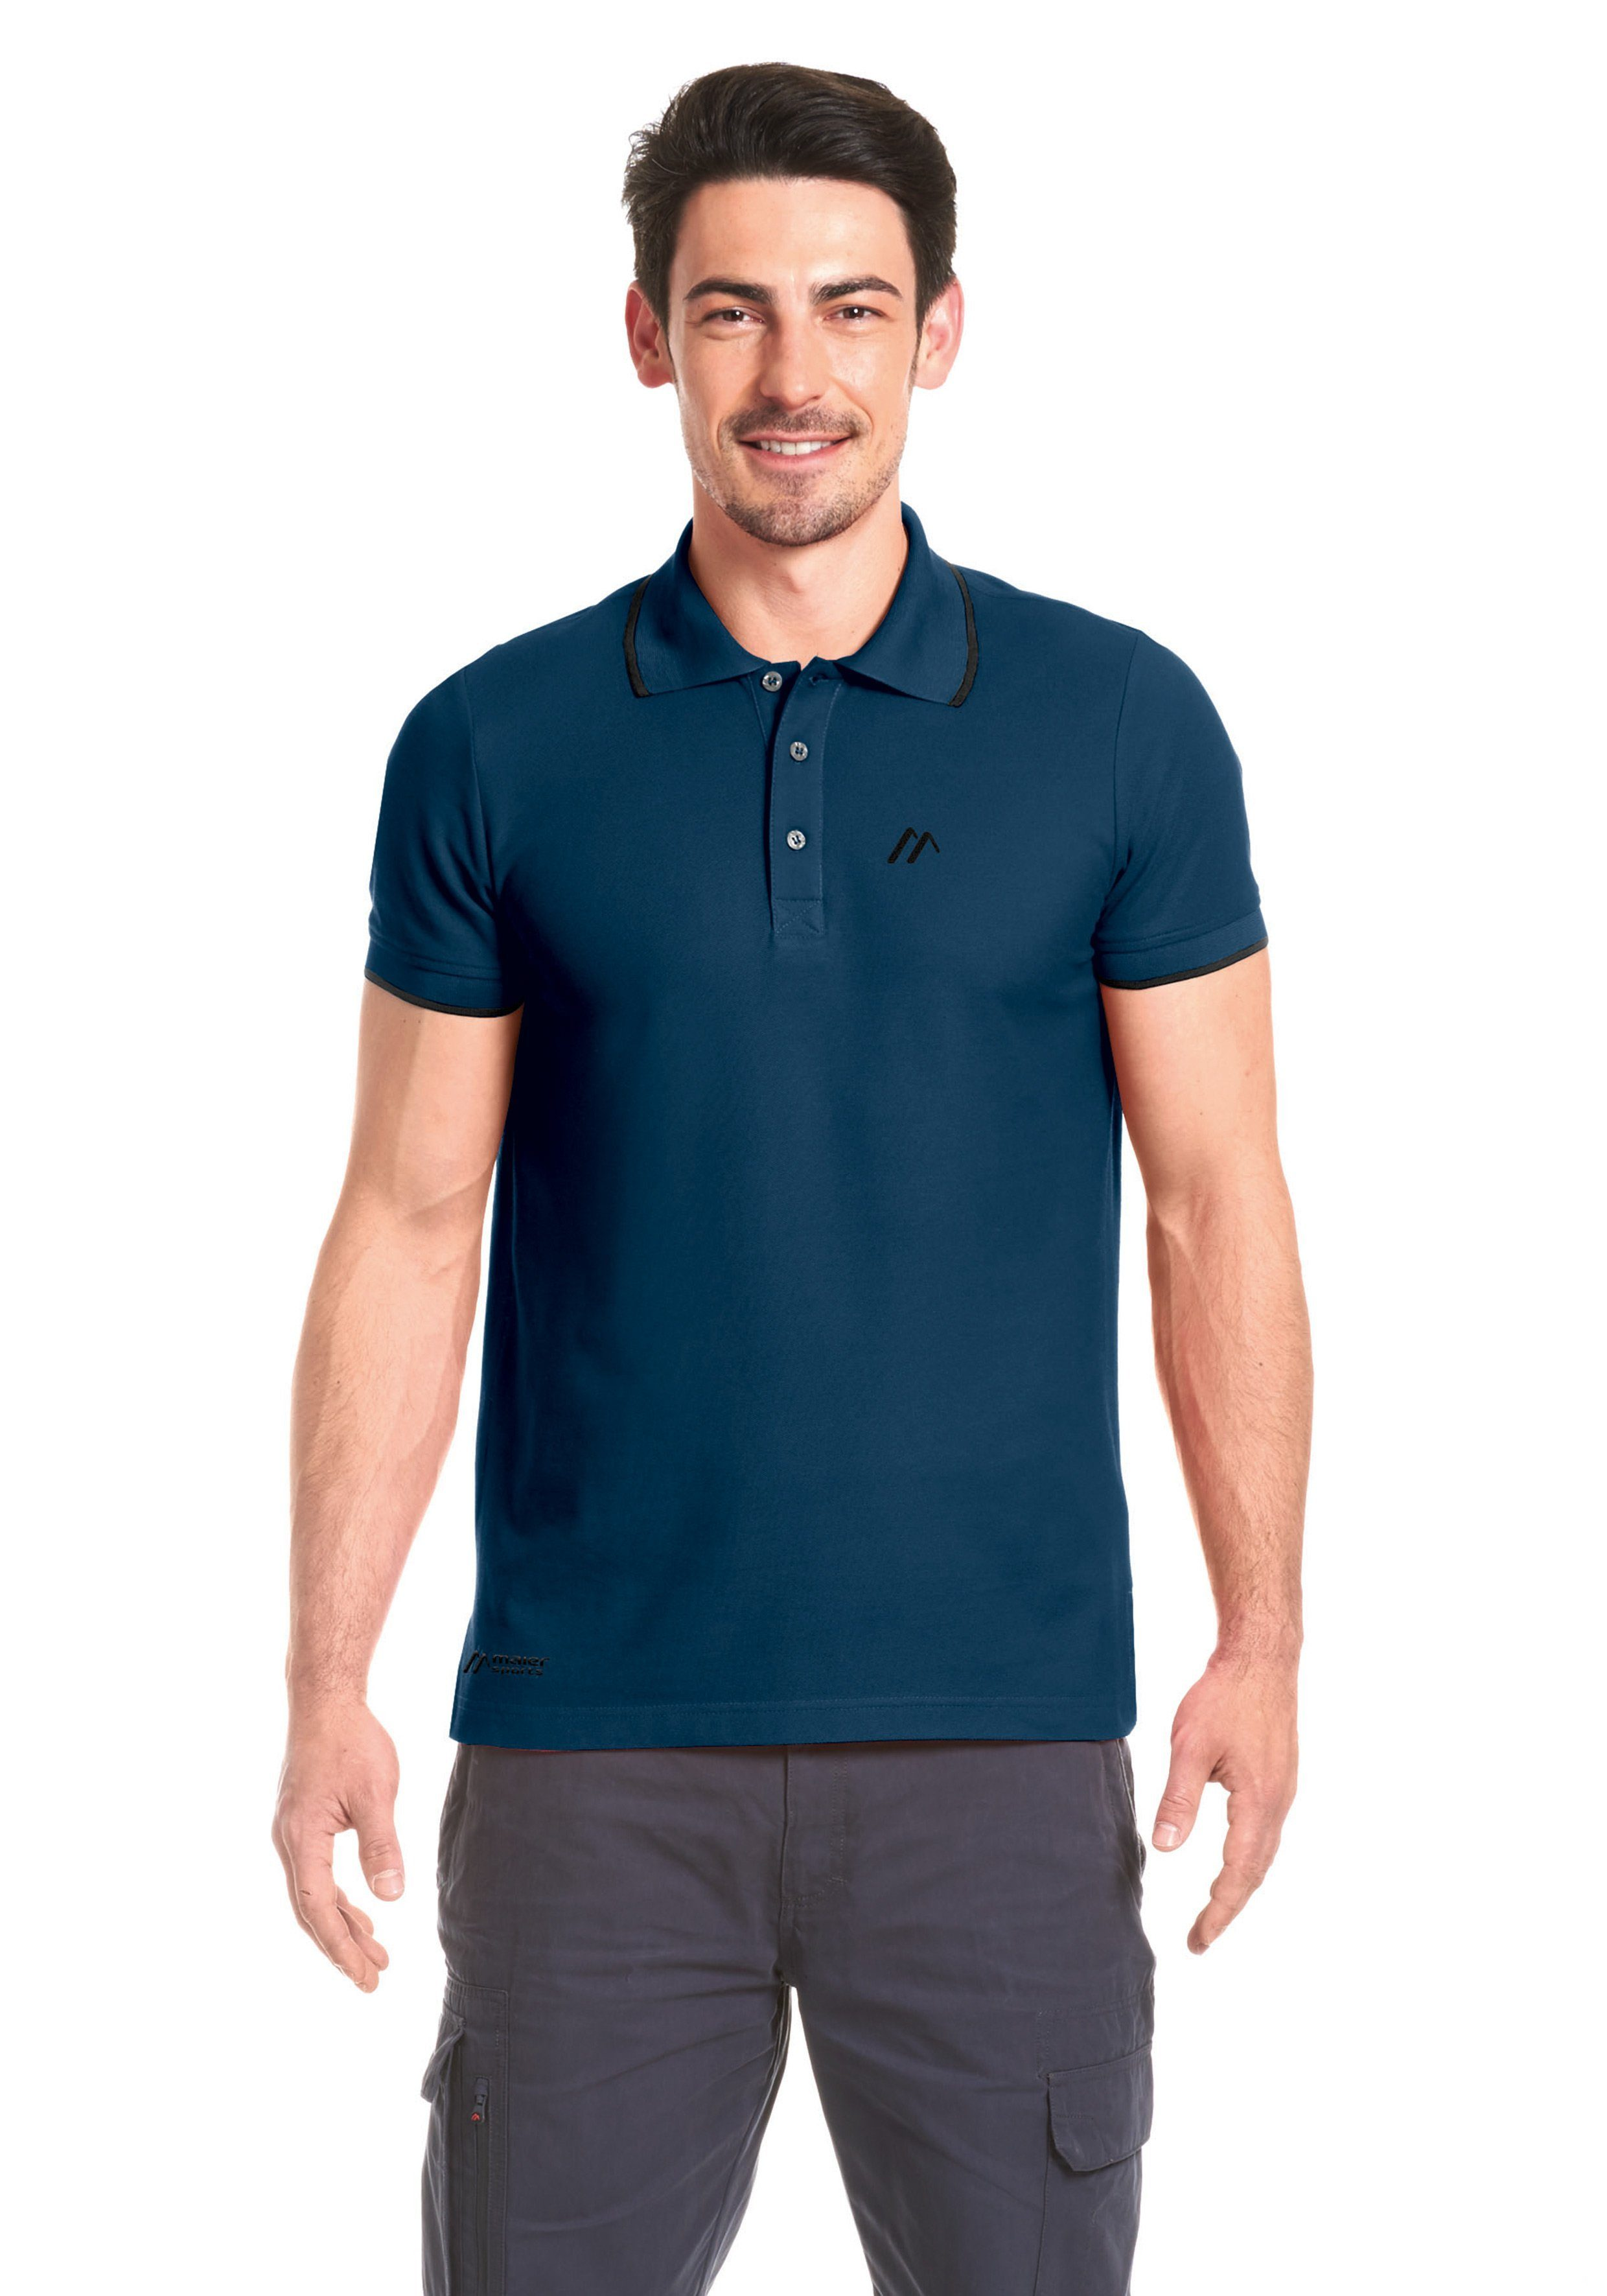 Maier Sports Funktionsshirt Comfort Polo M | Sportbekleidung > Sportshirts > Funktionsshirts | Blau | Jersey - Baumwolle - Polyester | Maier Sports